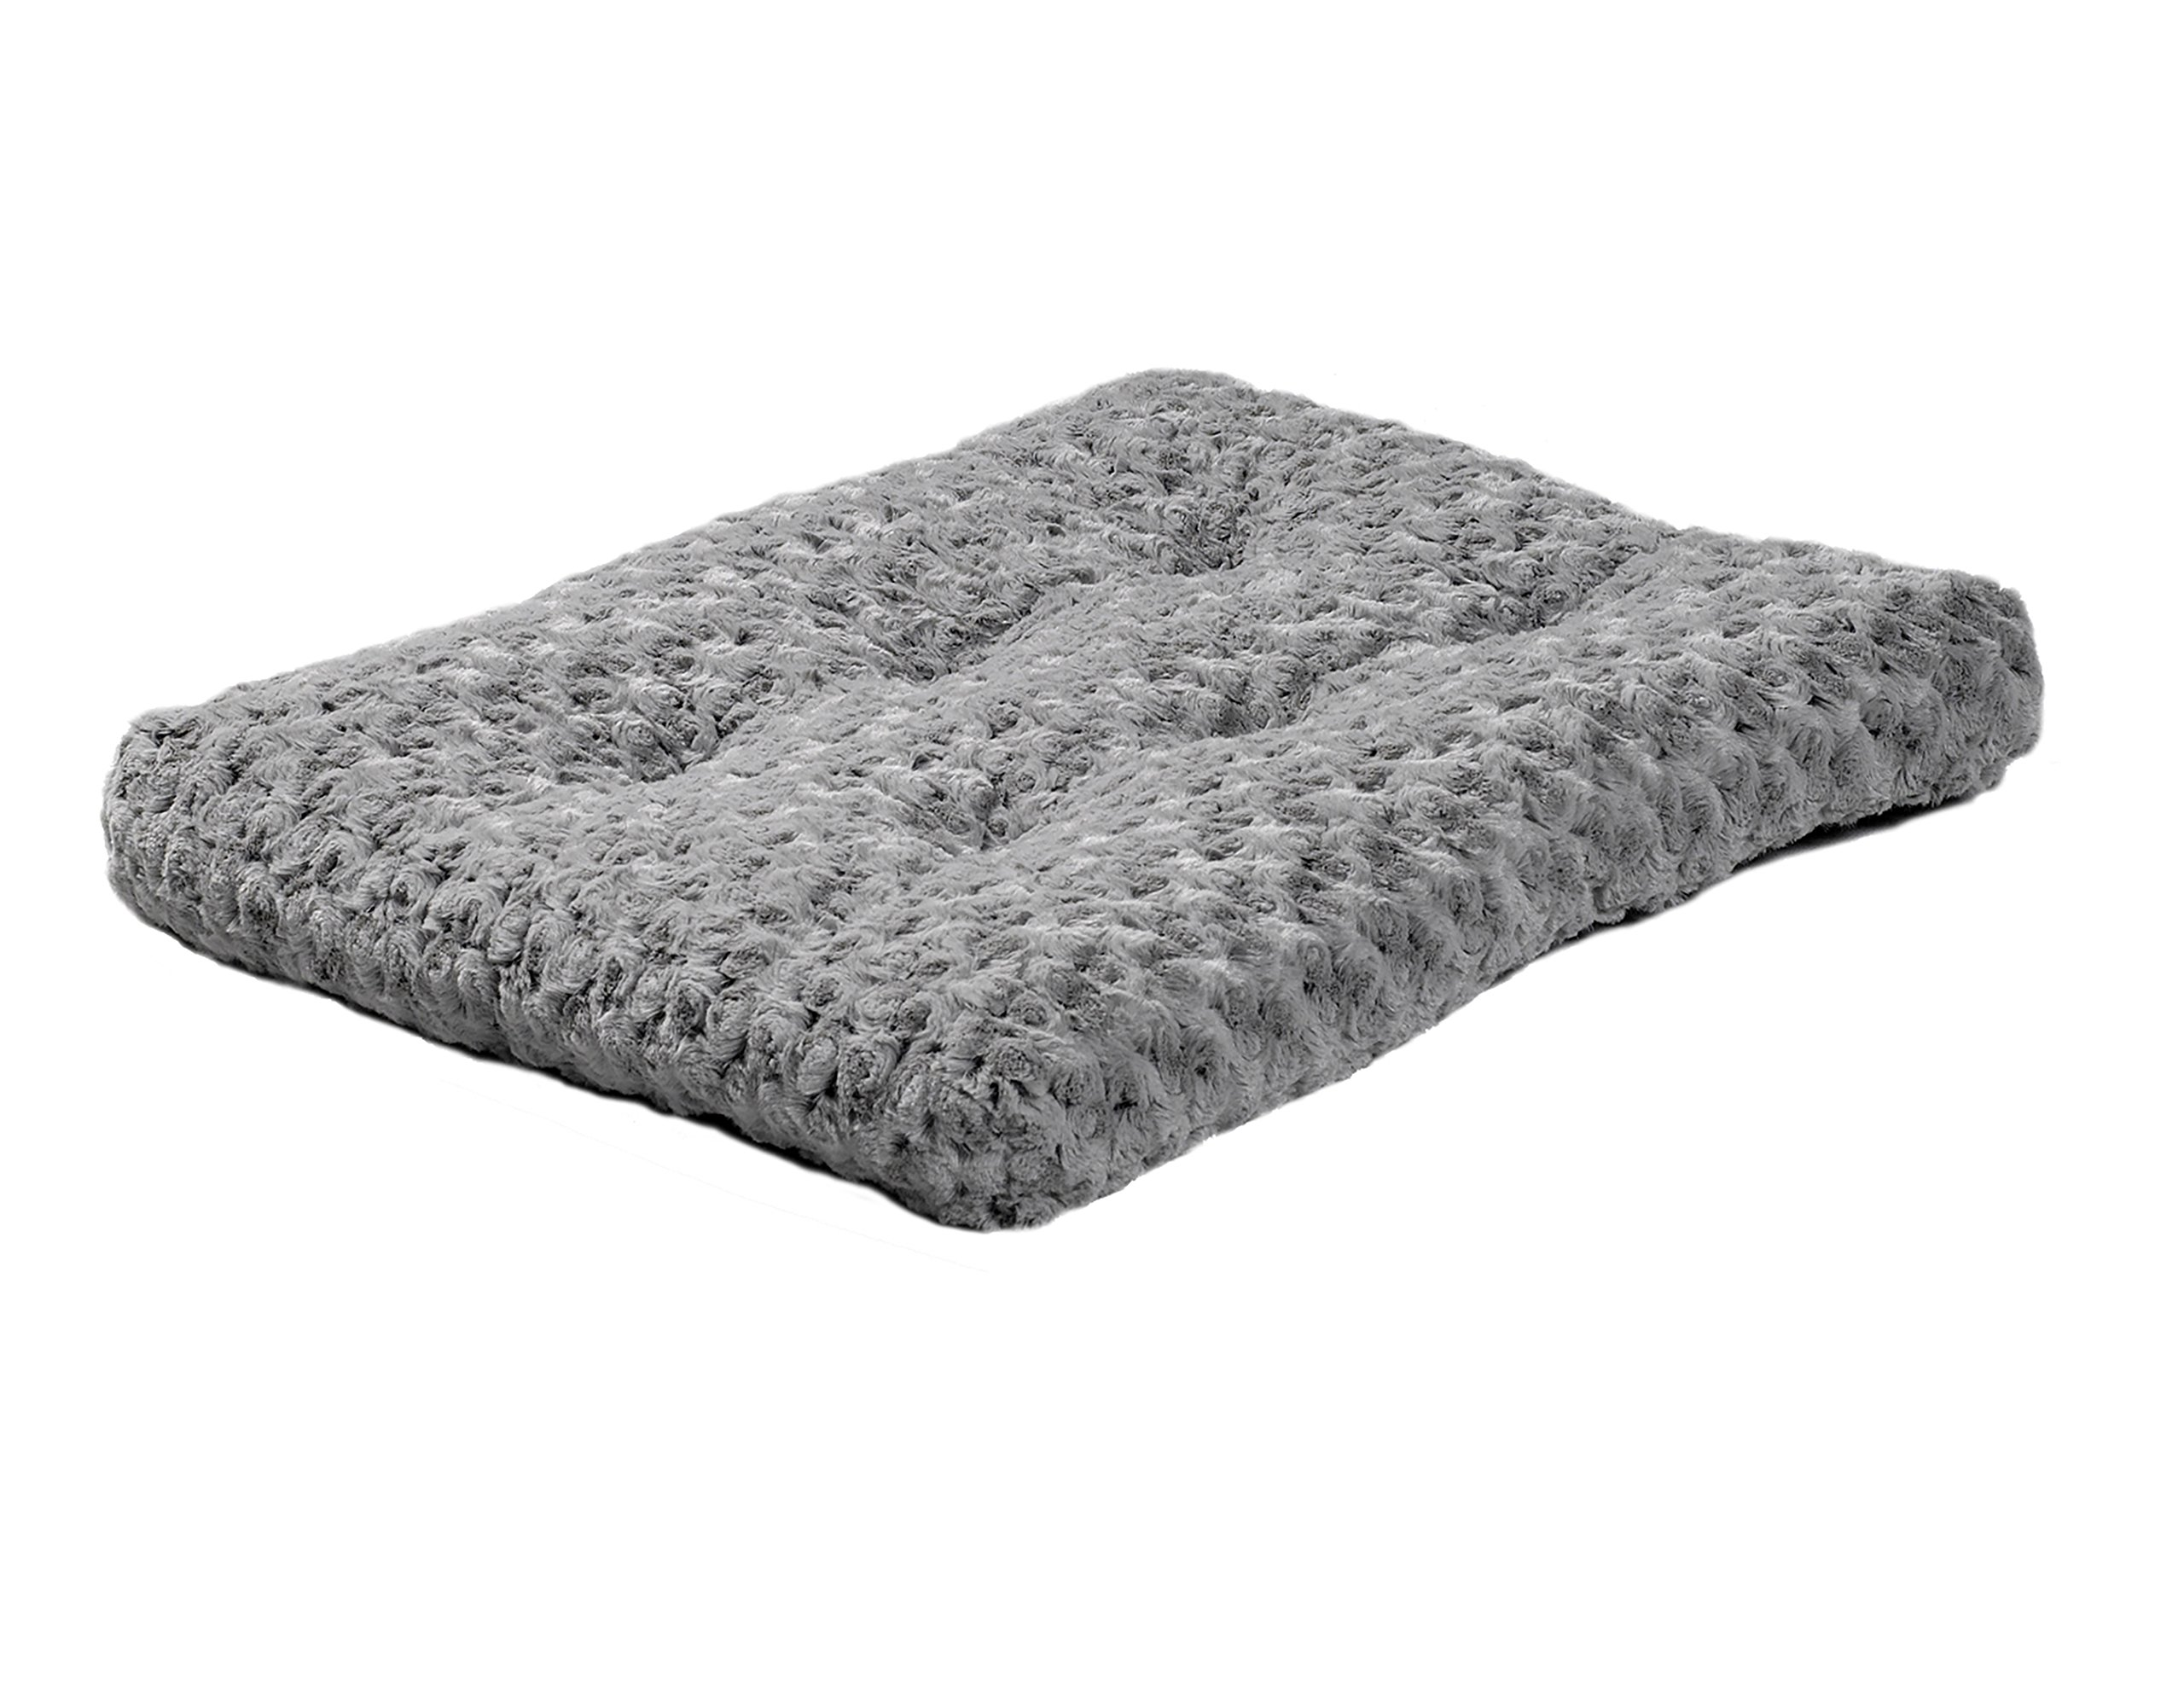 MidWest Homes for Pets Plush Pet Bed | Ombré Swirl Dog Bed & Cat Bed | Gray 23L x 18W x 1.75H -Inches for Small Dog Breeds